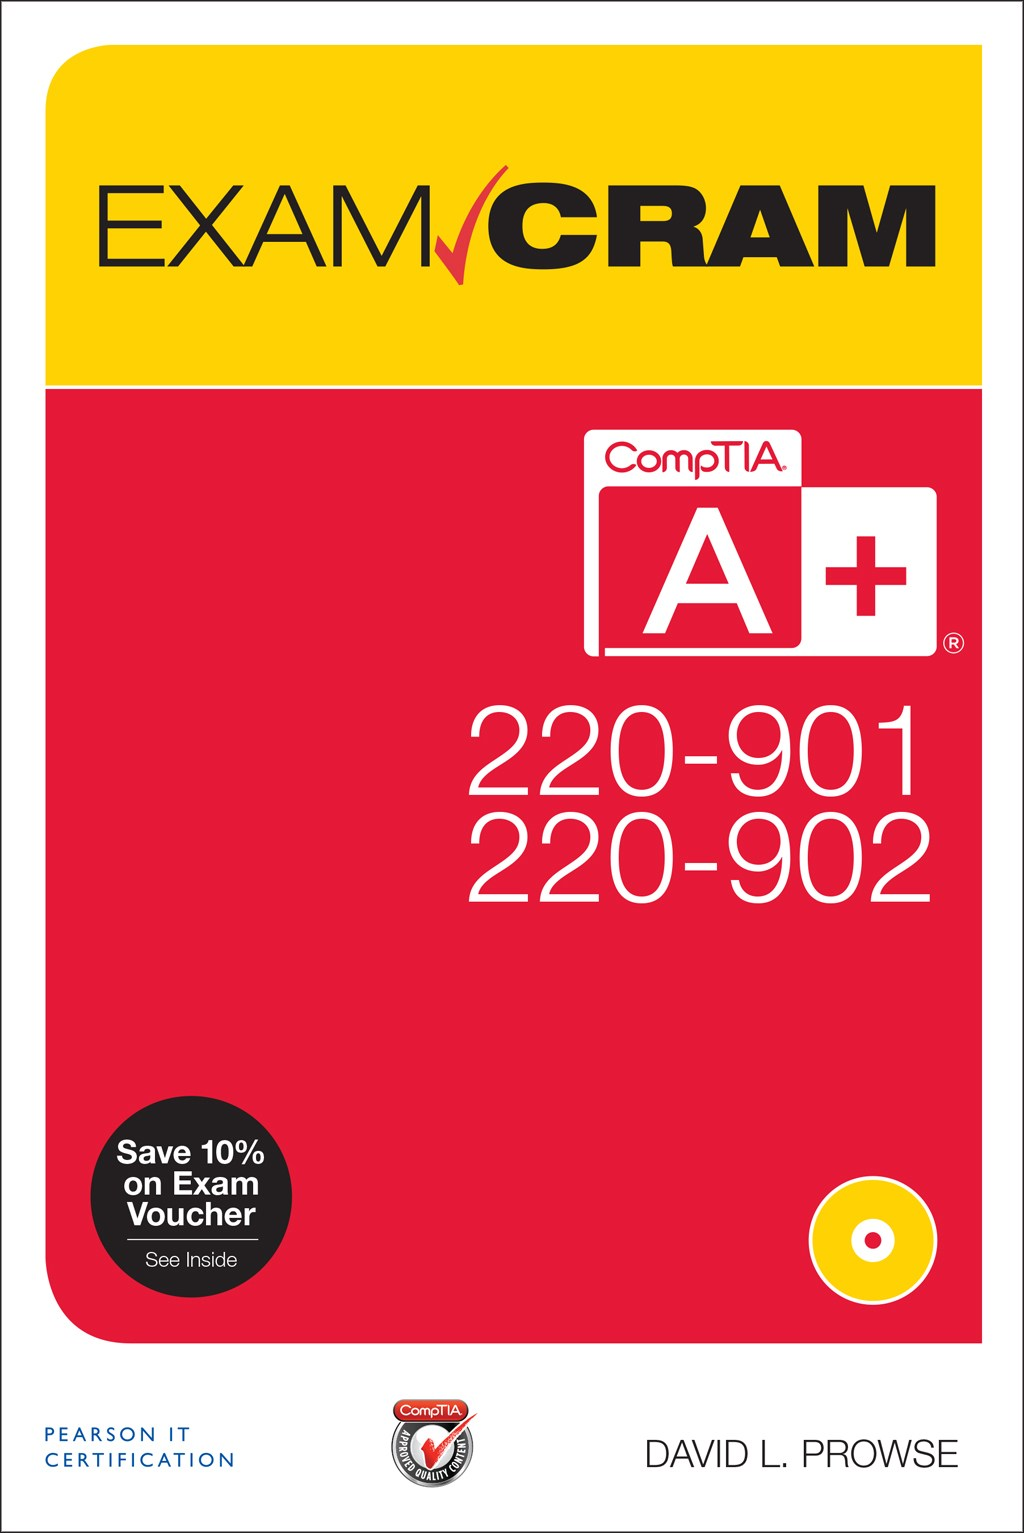 CompTIA A+ 220-901 and 220-902 Exam Cram